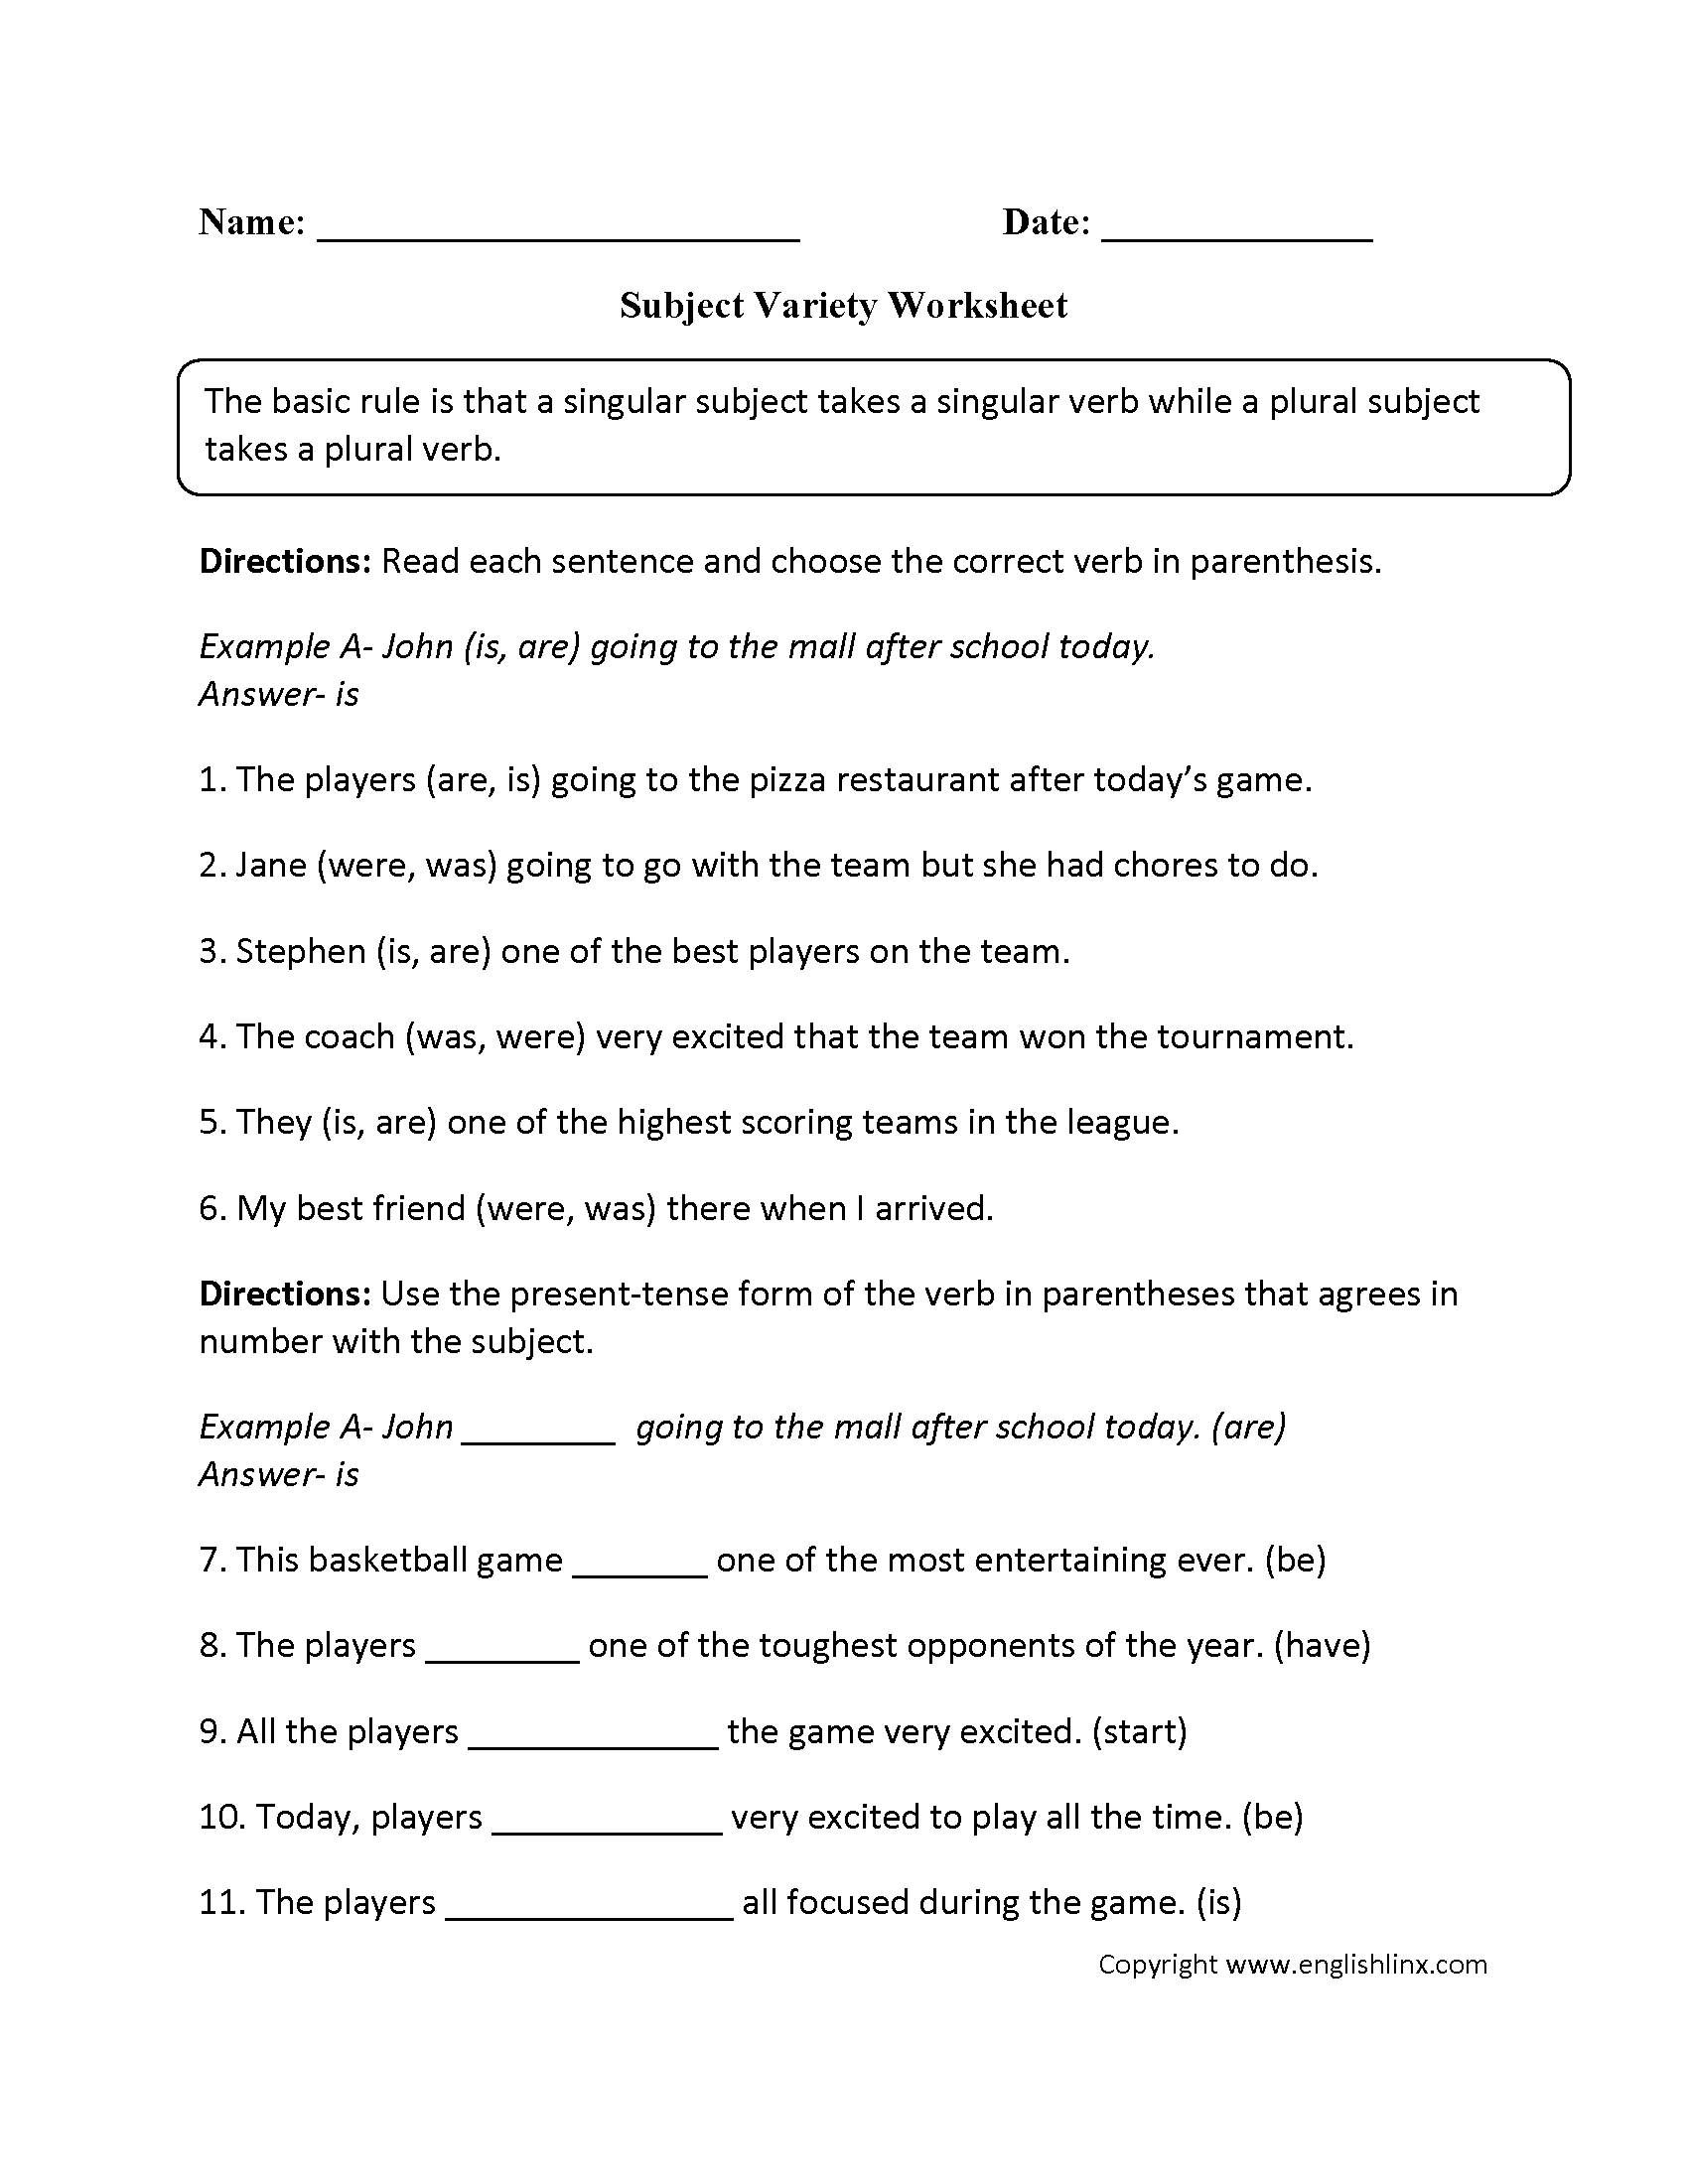 Worksheets Subject Predicate Worksheets 3rd Grade subject verb worksheets free library download and englishlinx com predicate worksheets